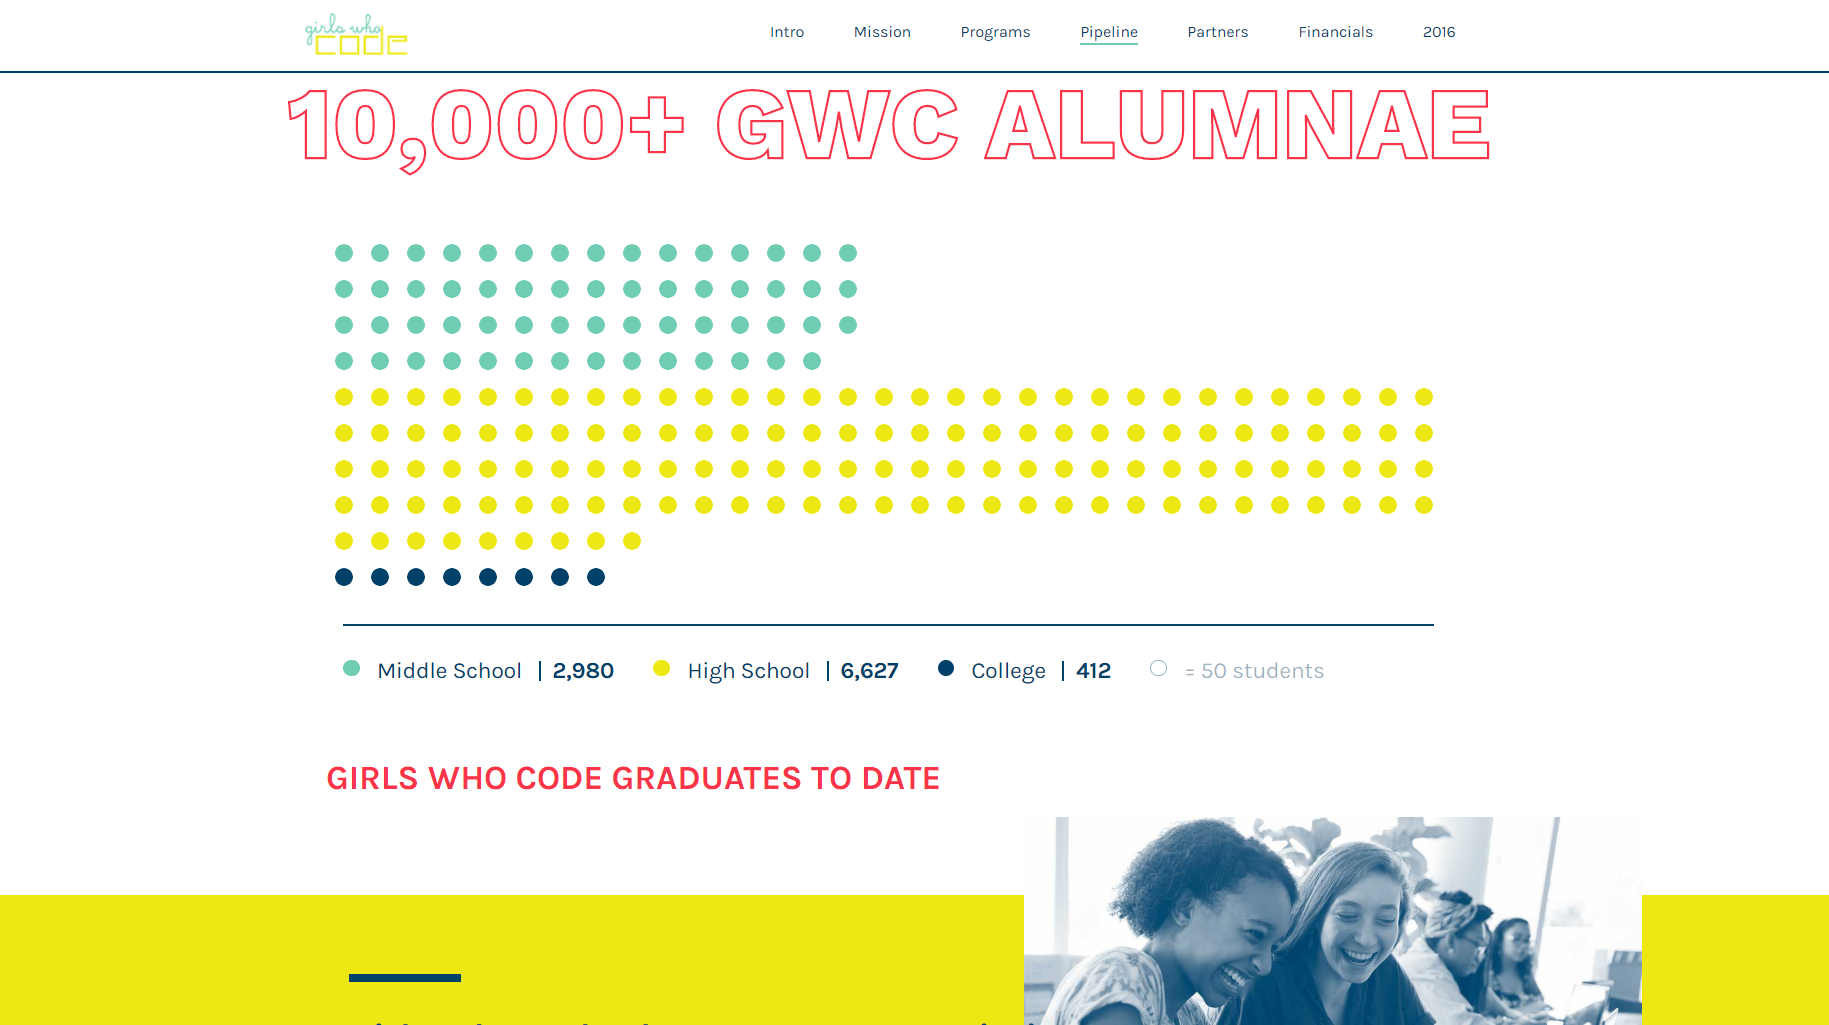 A page from the Girls Who Code annual report, showcasing the number of GWC alumnae in a yellow-and-green dotted bar chart.